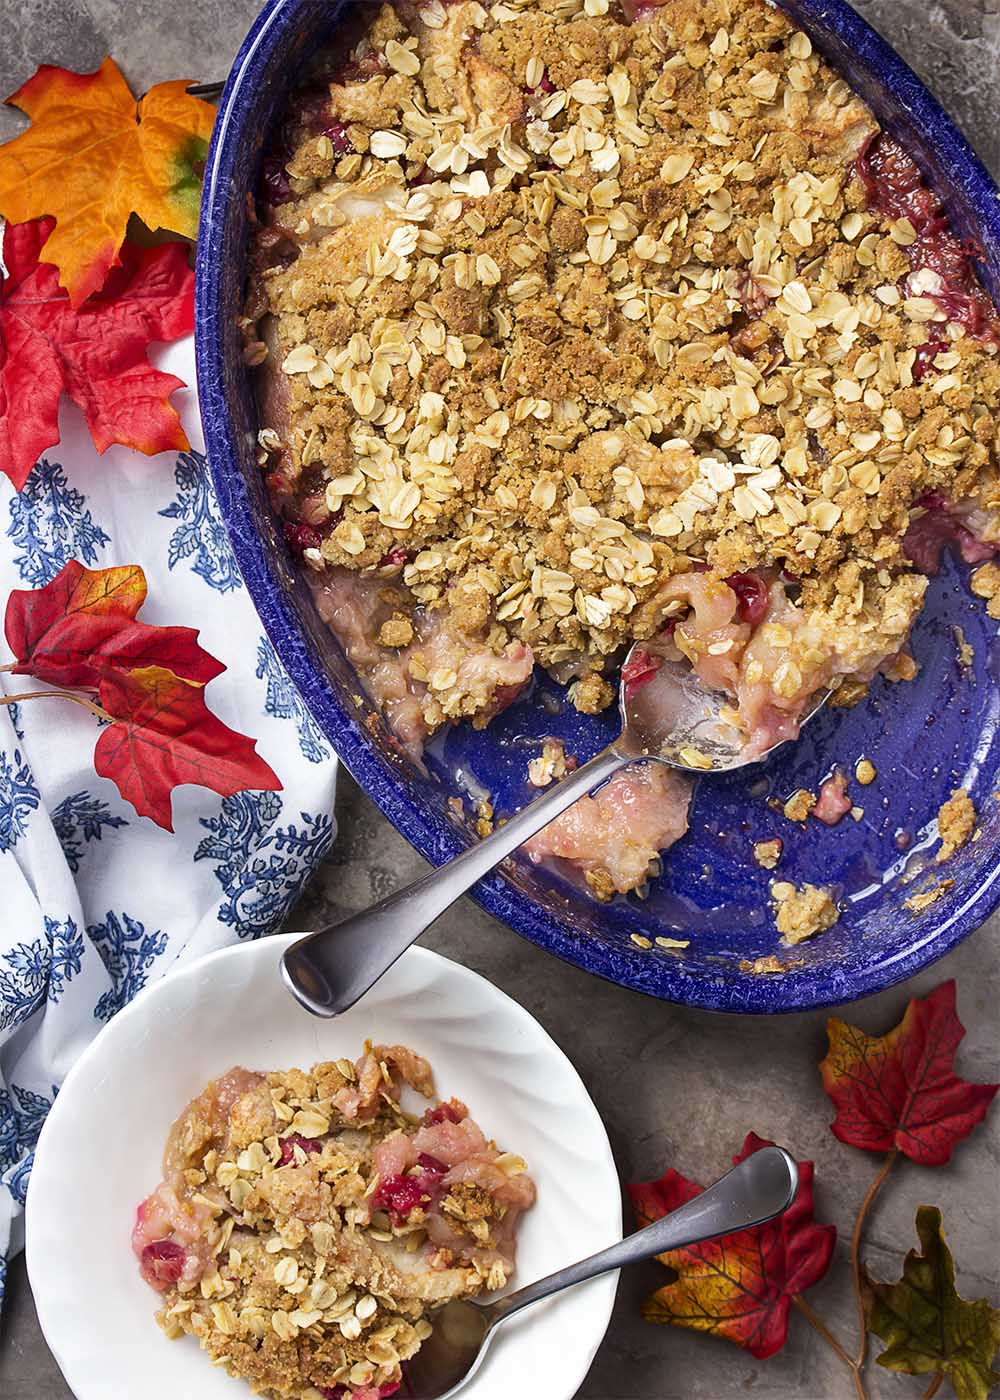 Top view of the baked apple cranberry crisp in a rustic blue oval baking dish.